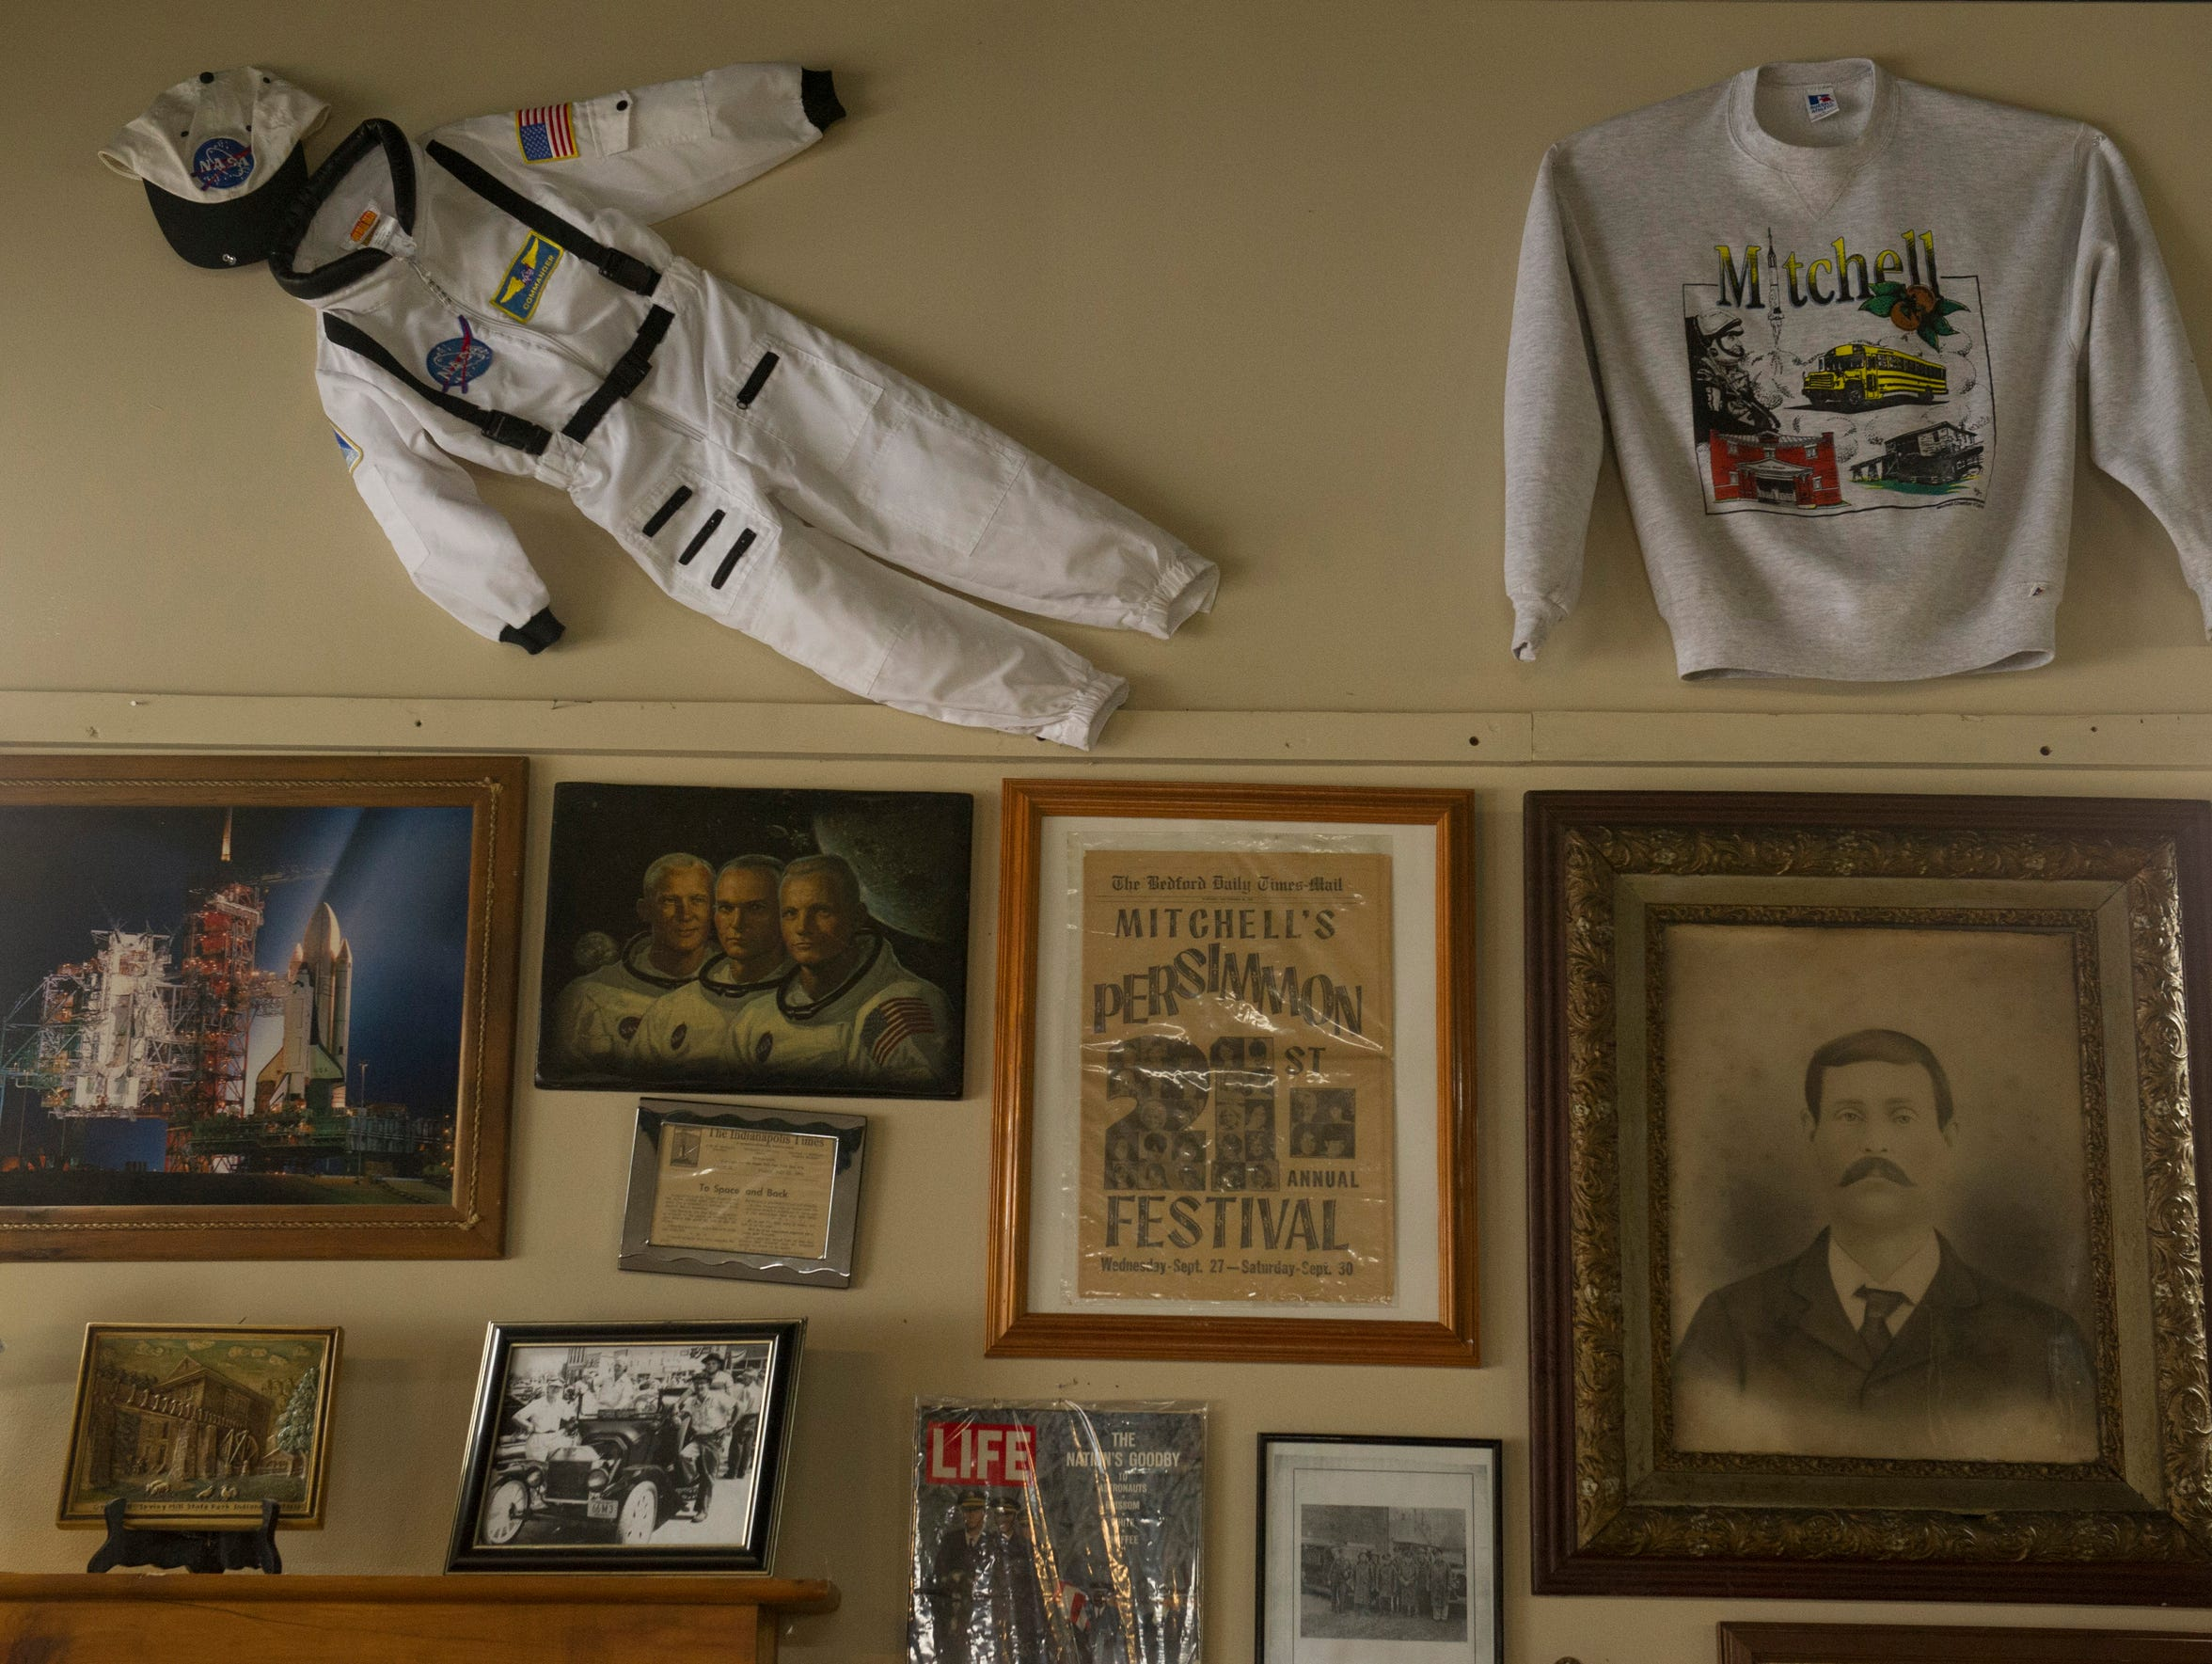 Fun Finds Antiques in Mitchell, Ind., has a tribute